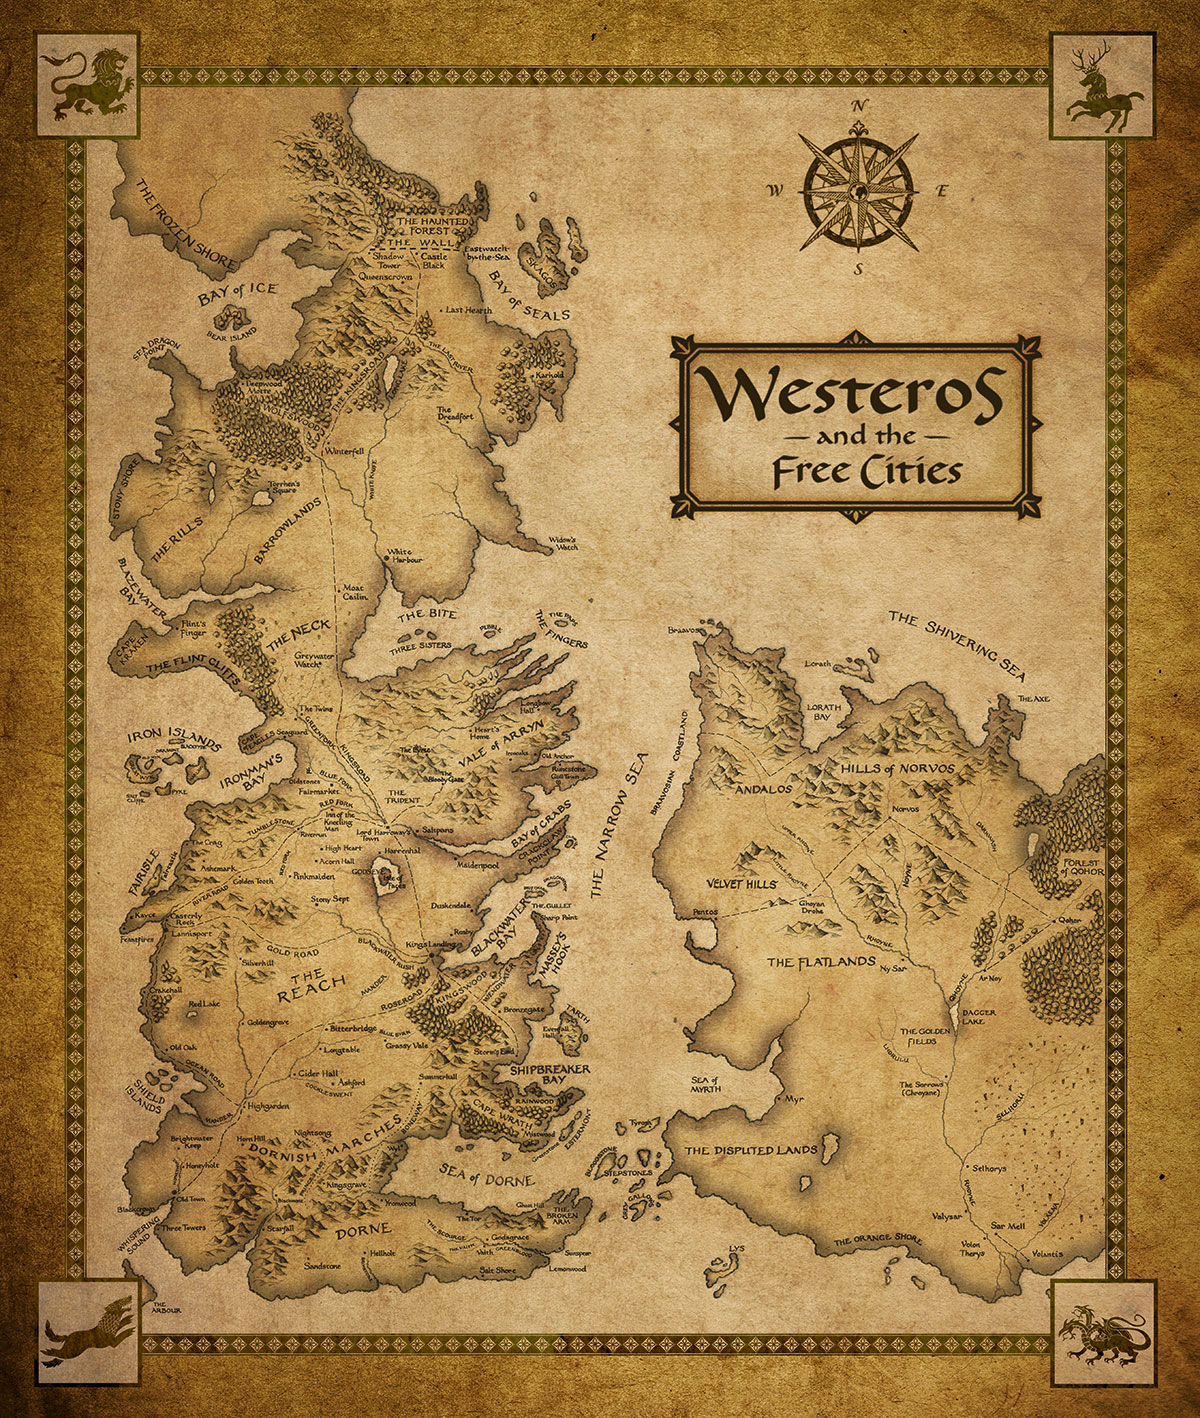 Free Download Game Of Thrones Images Westeros And The Cities Map